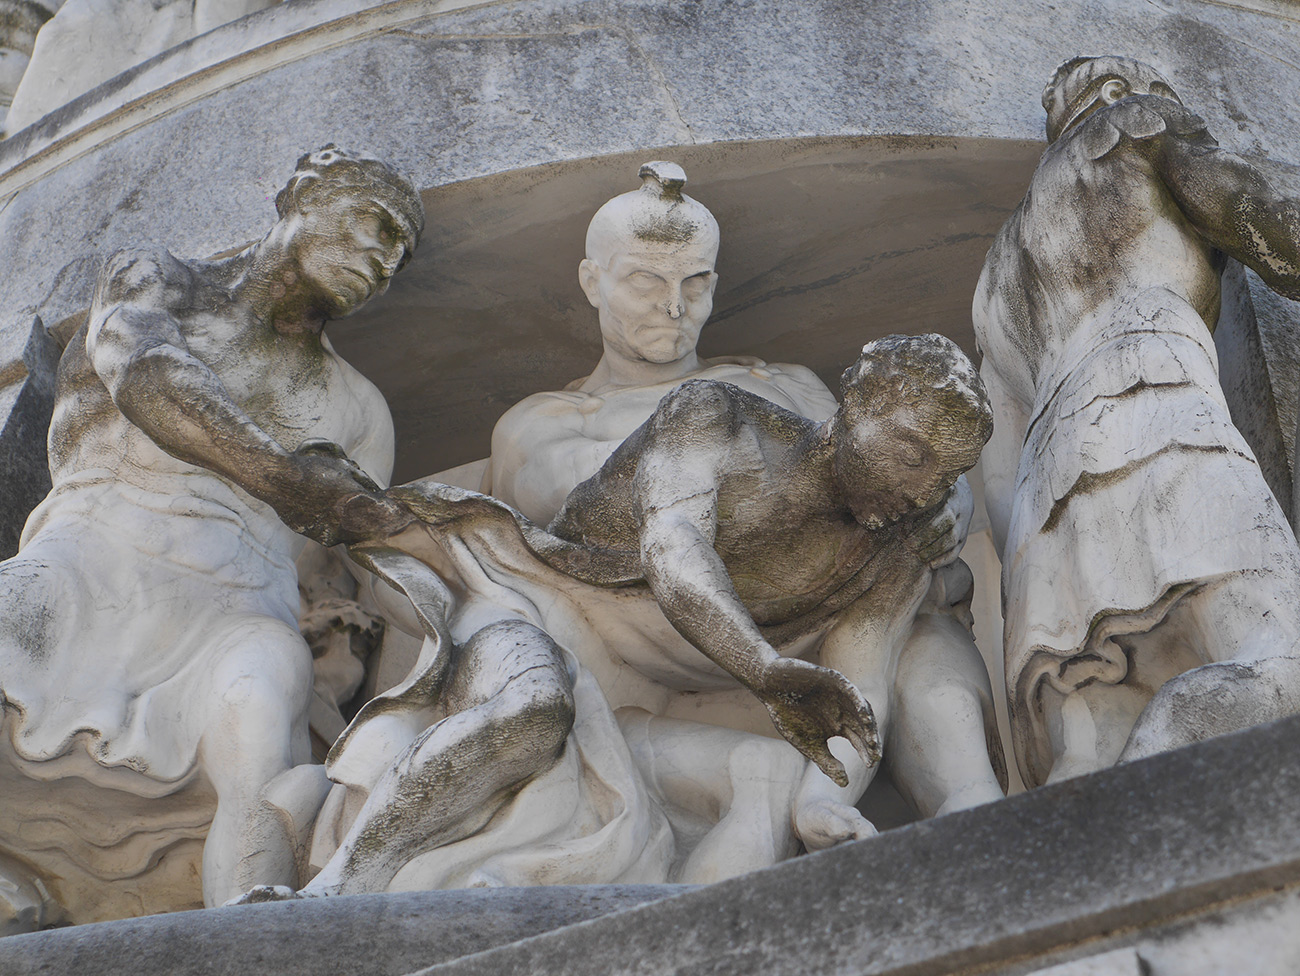 Architectural detail of four figures, one of whom is falling while either being pushed down or caught by two others.